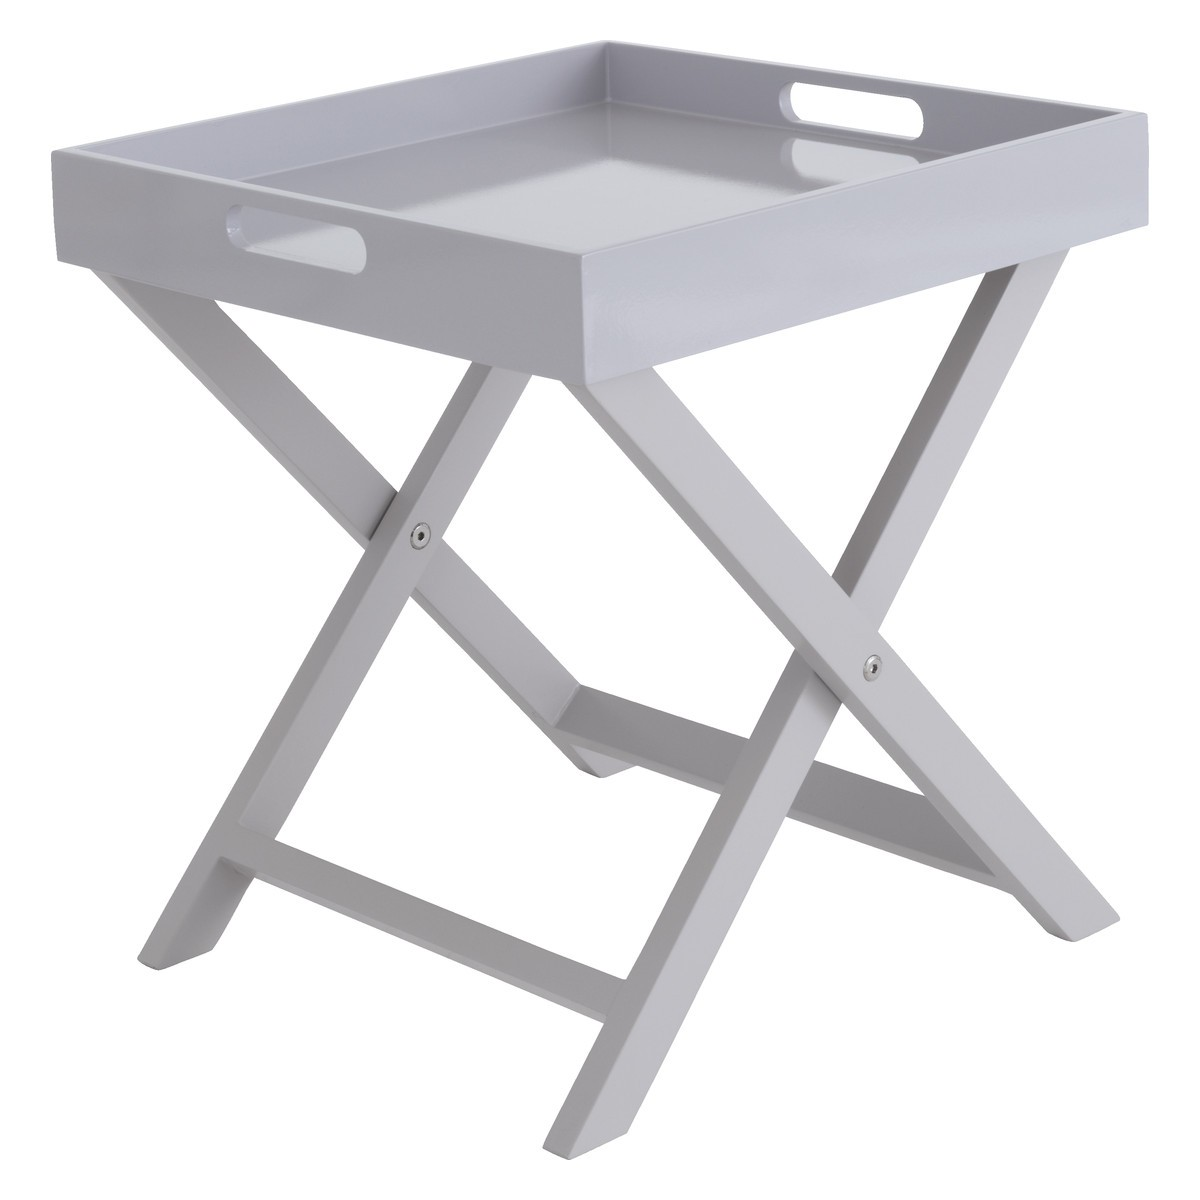 side tables nest small glass metal folding accent table oken grey with removable tray top rocking chair oval dining cover pedestal coffee and half moon wall wooden bedside lamps